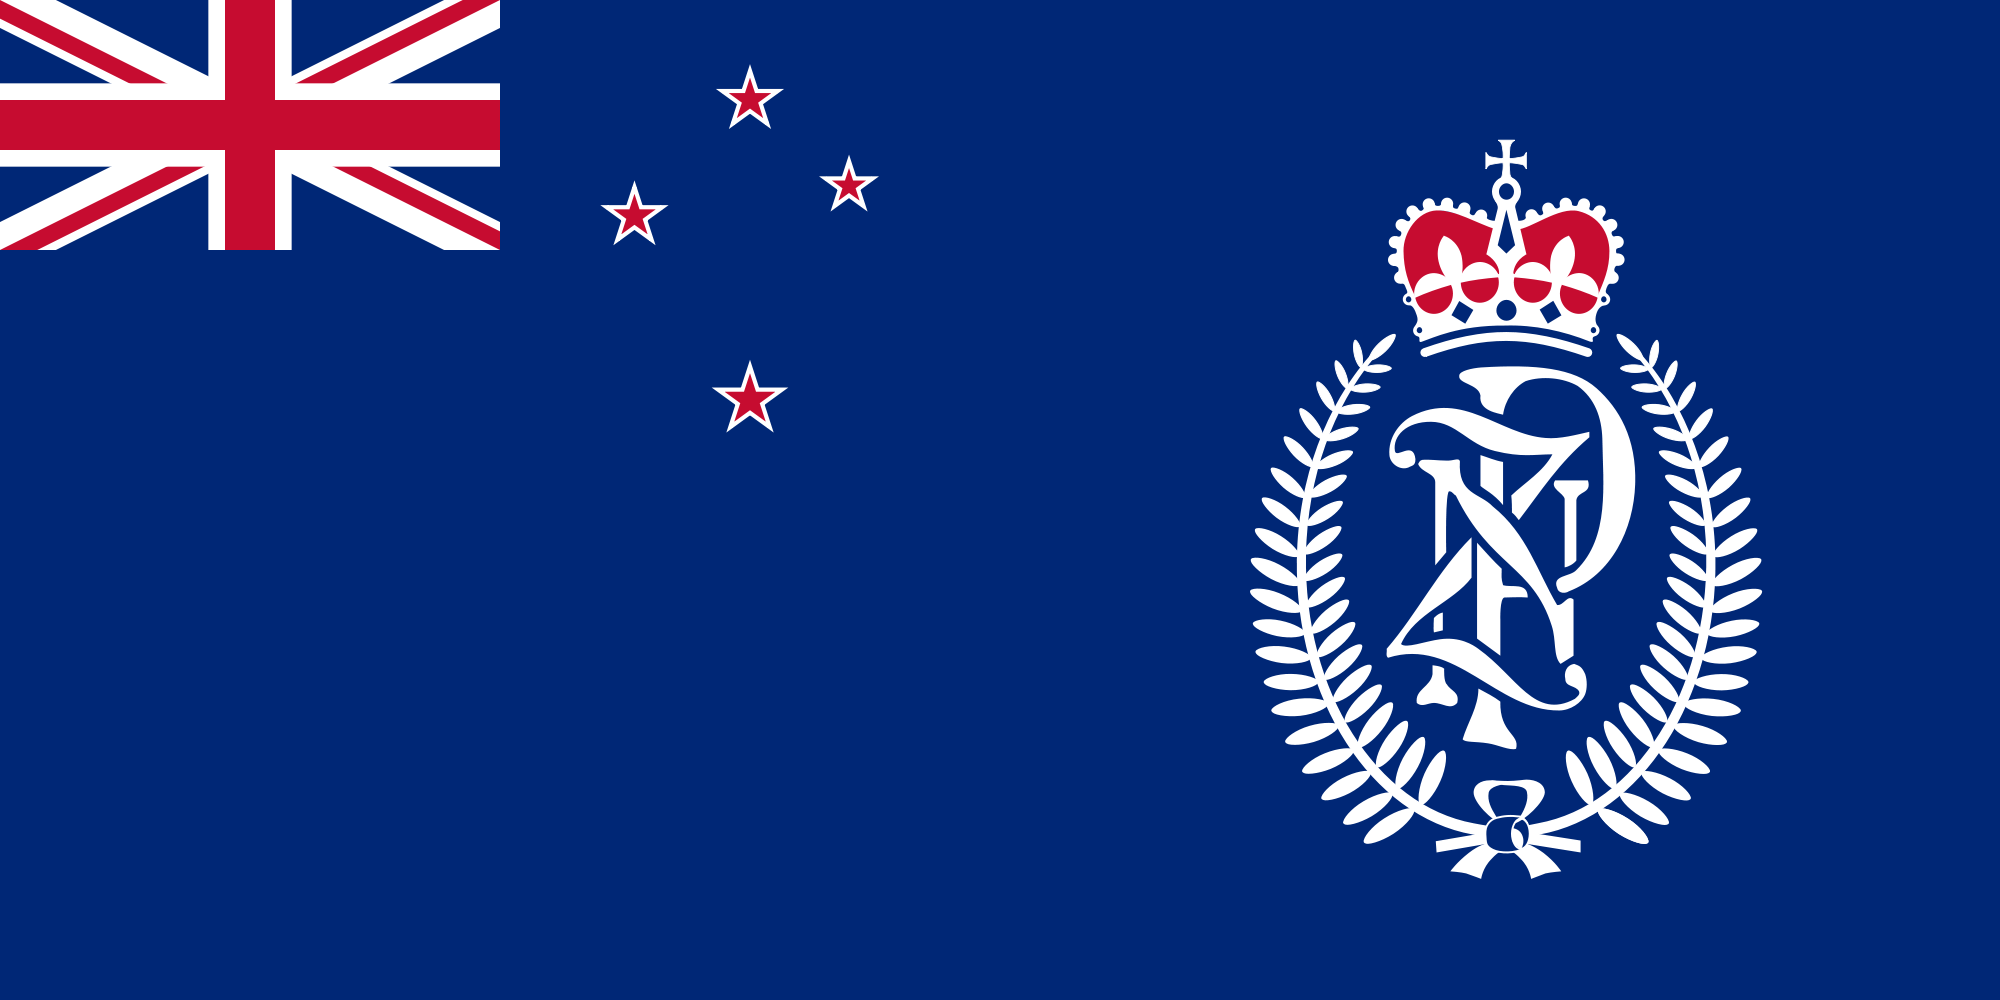 New Zealand Police New Zealand Flag Flags Of The World Police Flag